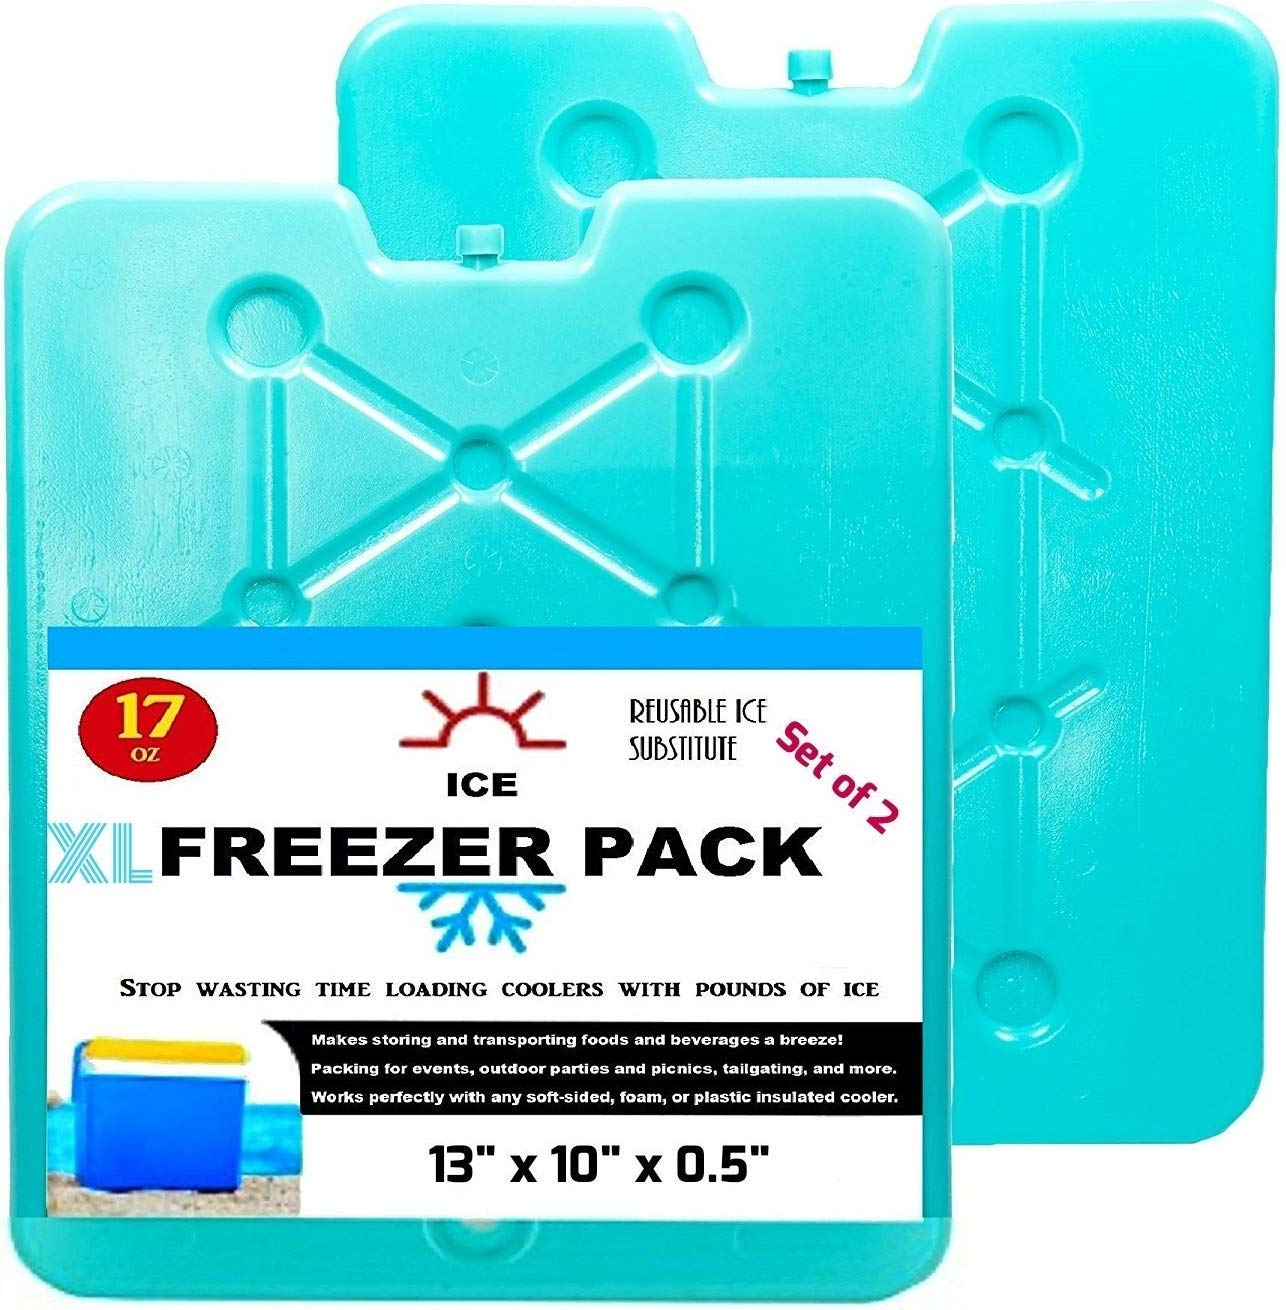 Large Ice Packs For Coolers and Ice Chest by Portion/Perfect - 20 Minute Quick Freeze Long Lasting Freezer Packs - Slim, Sealed and Reusable Ice Substitute 13 x 10 inch - Set of 2